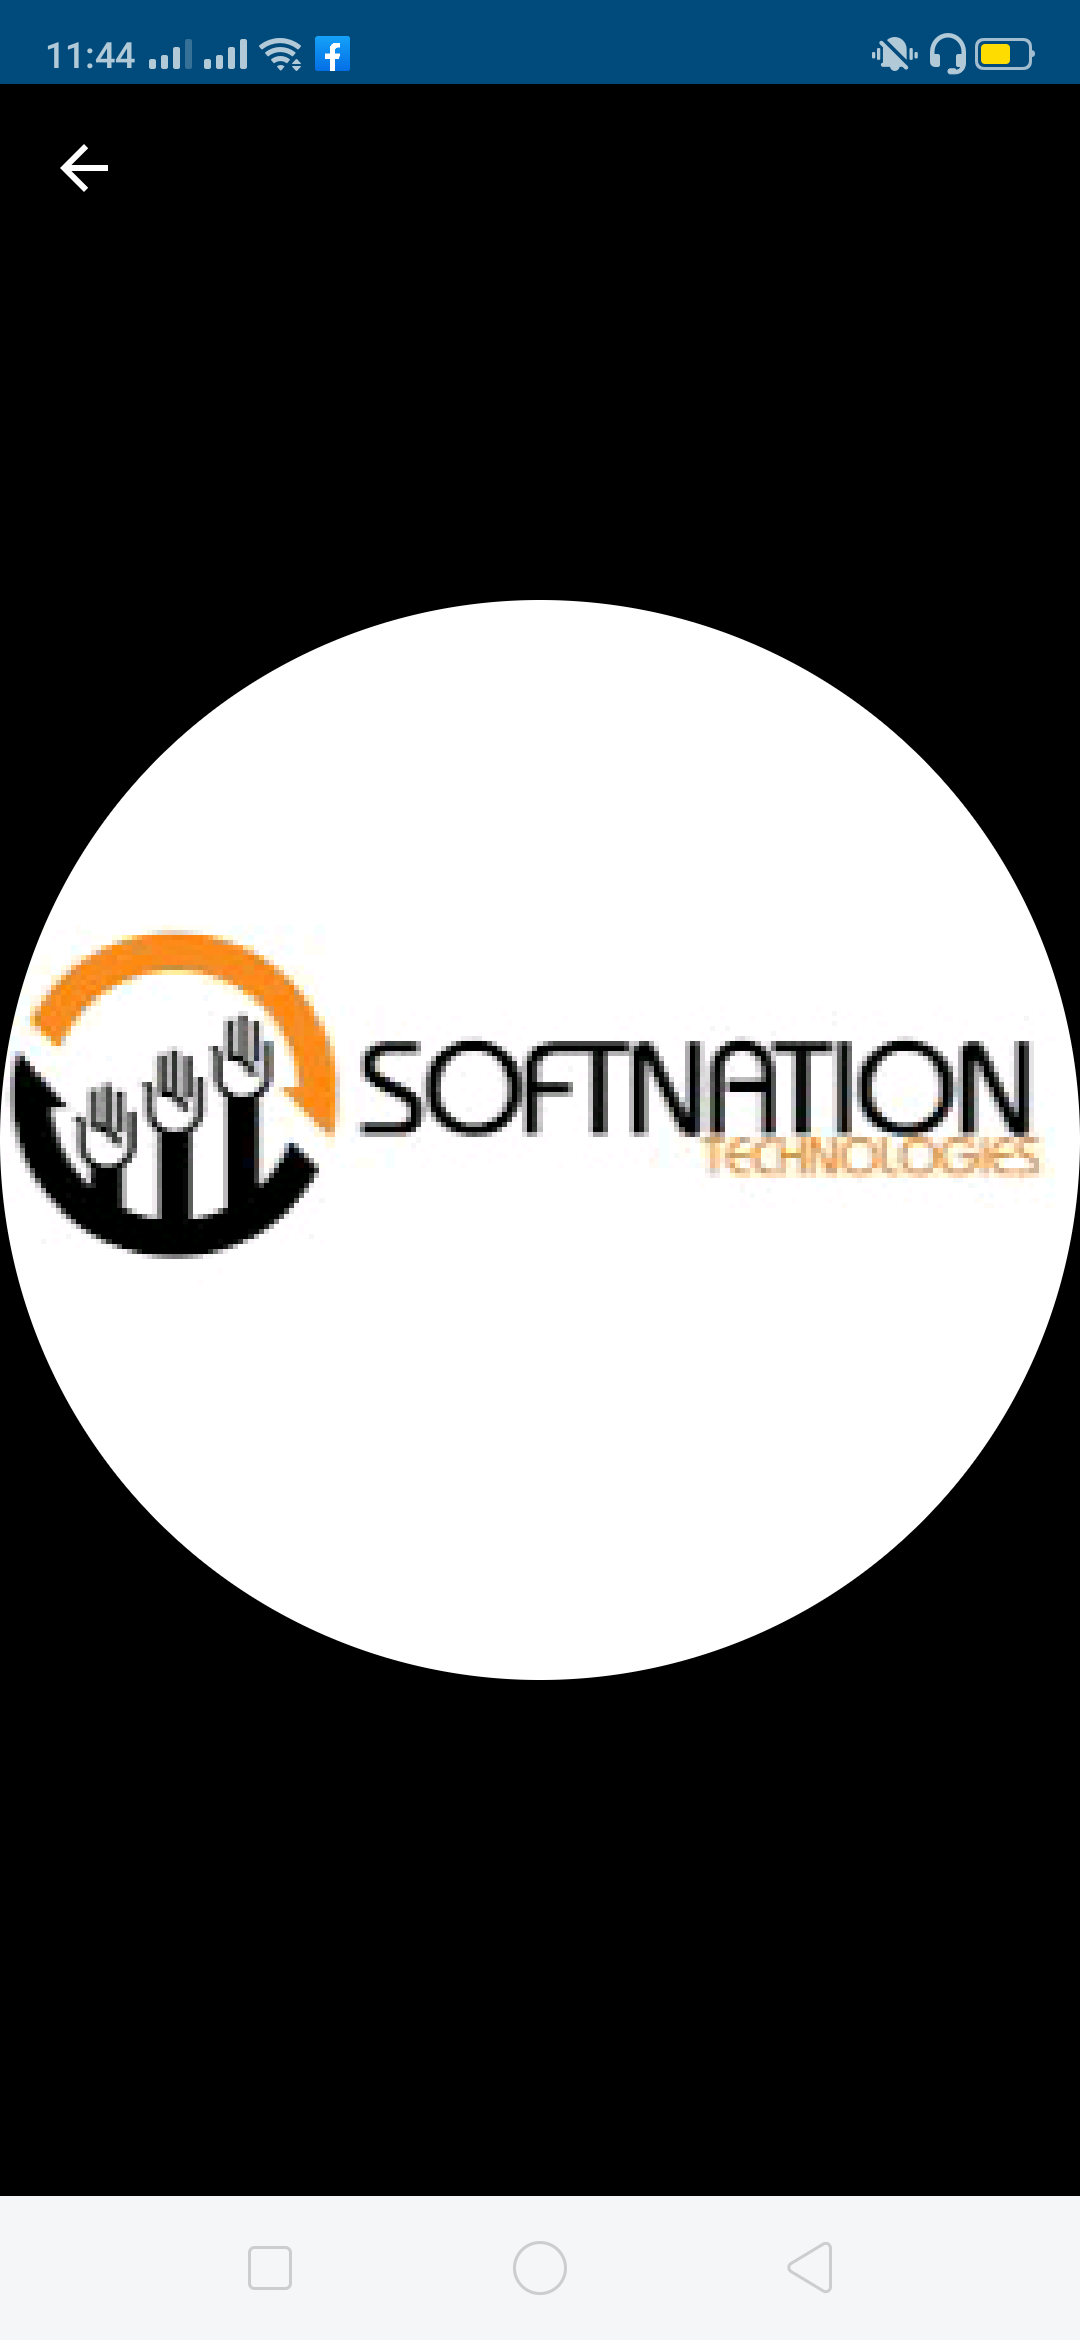 http://www.pakpositions.com/company/soft-nation-technologies